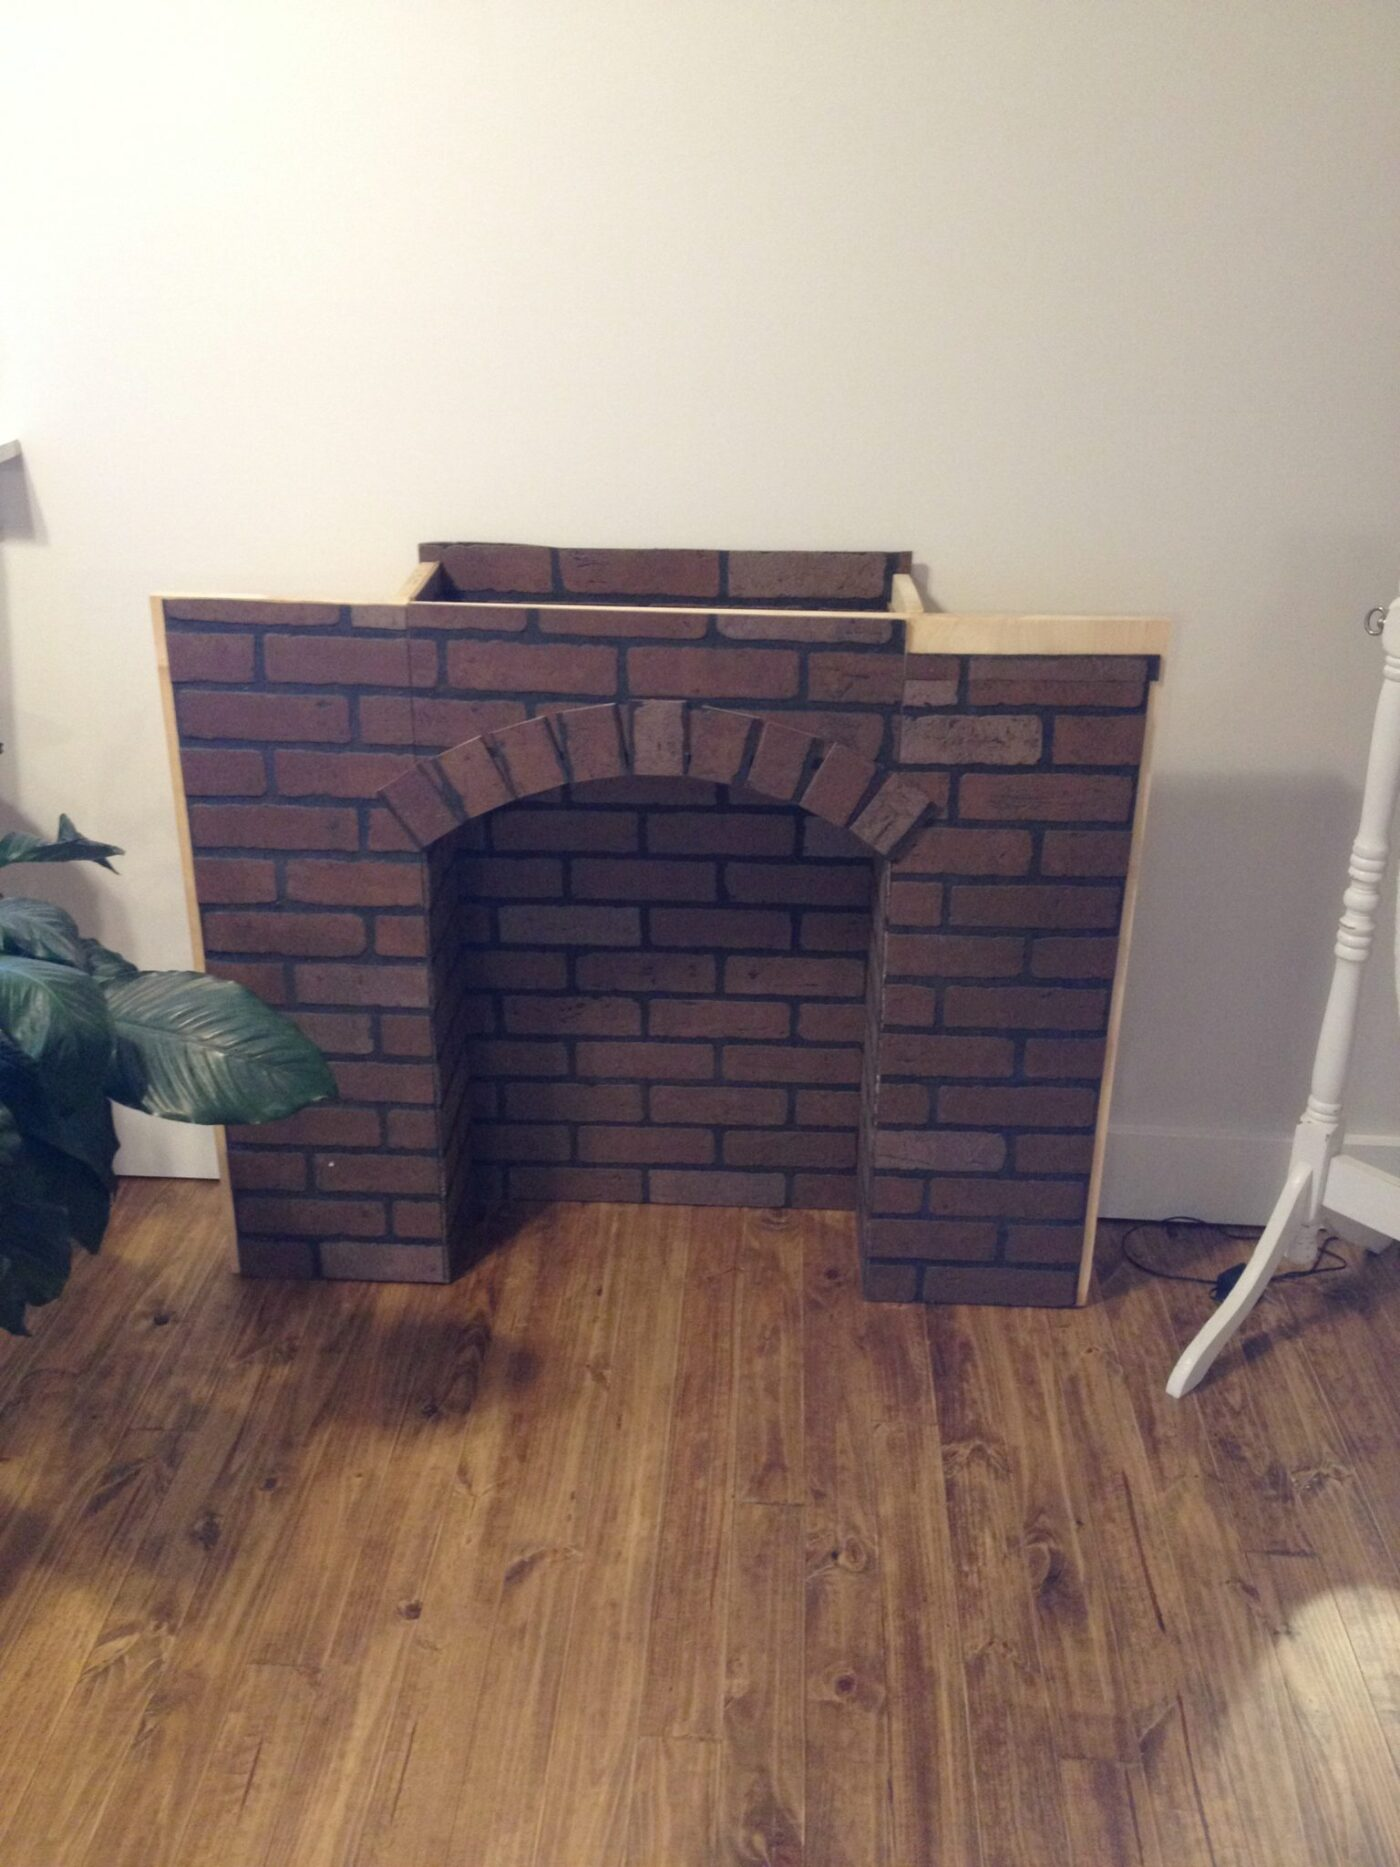 Build Your Own Fireplace Insert If You Re Going To Make It You Better Fake It Diy Fake Brick